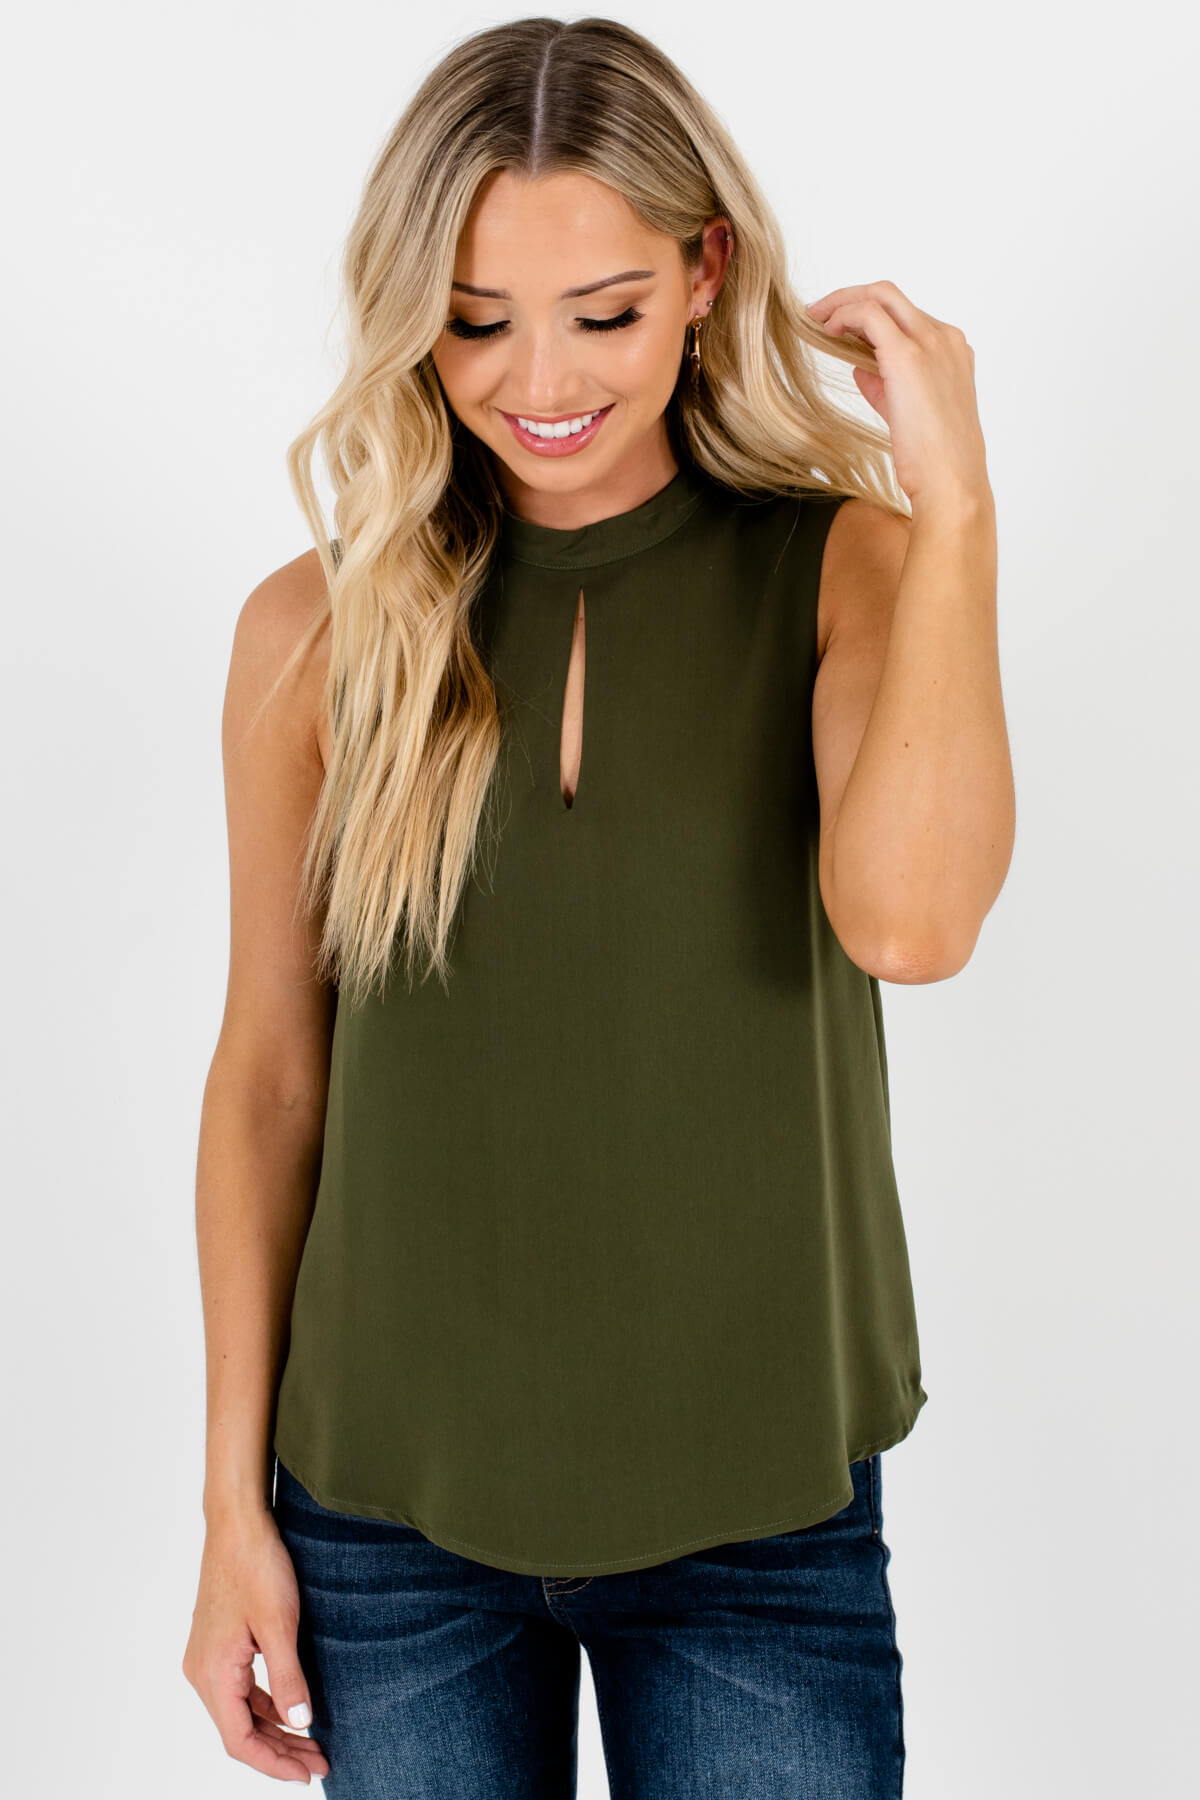 Olive Green High Neckline Keyhole Cutout Tank Tops for Women